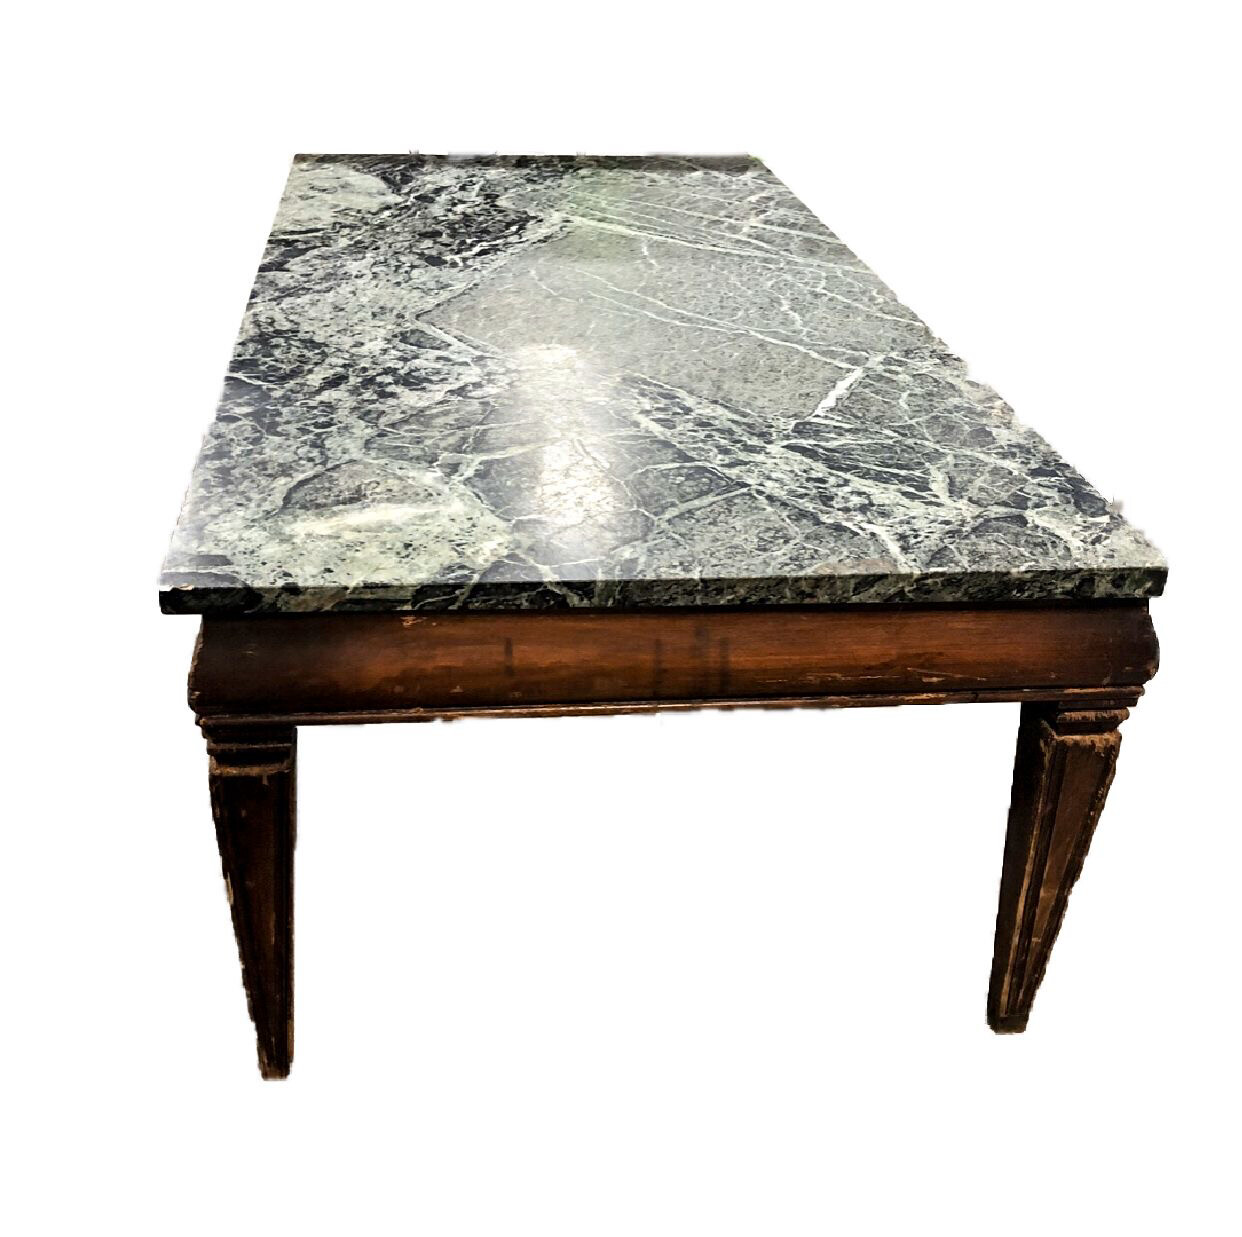 3-piece green marble table set